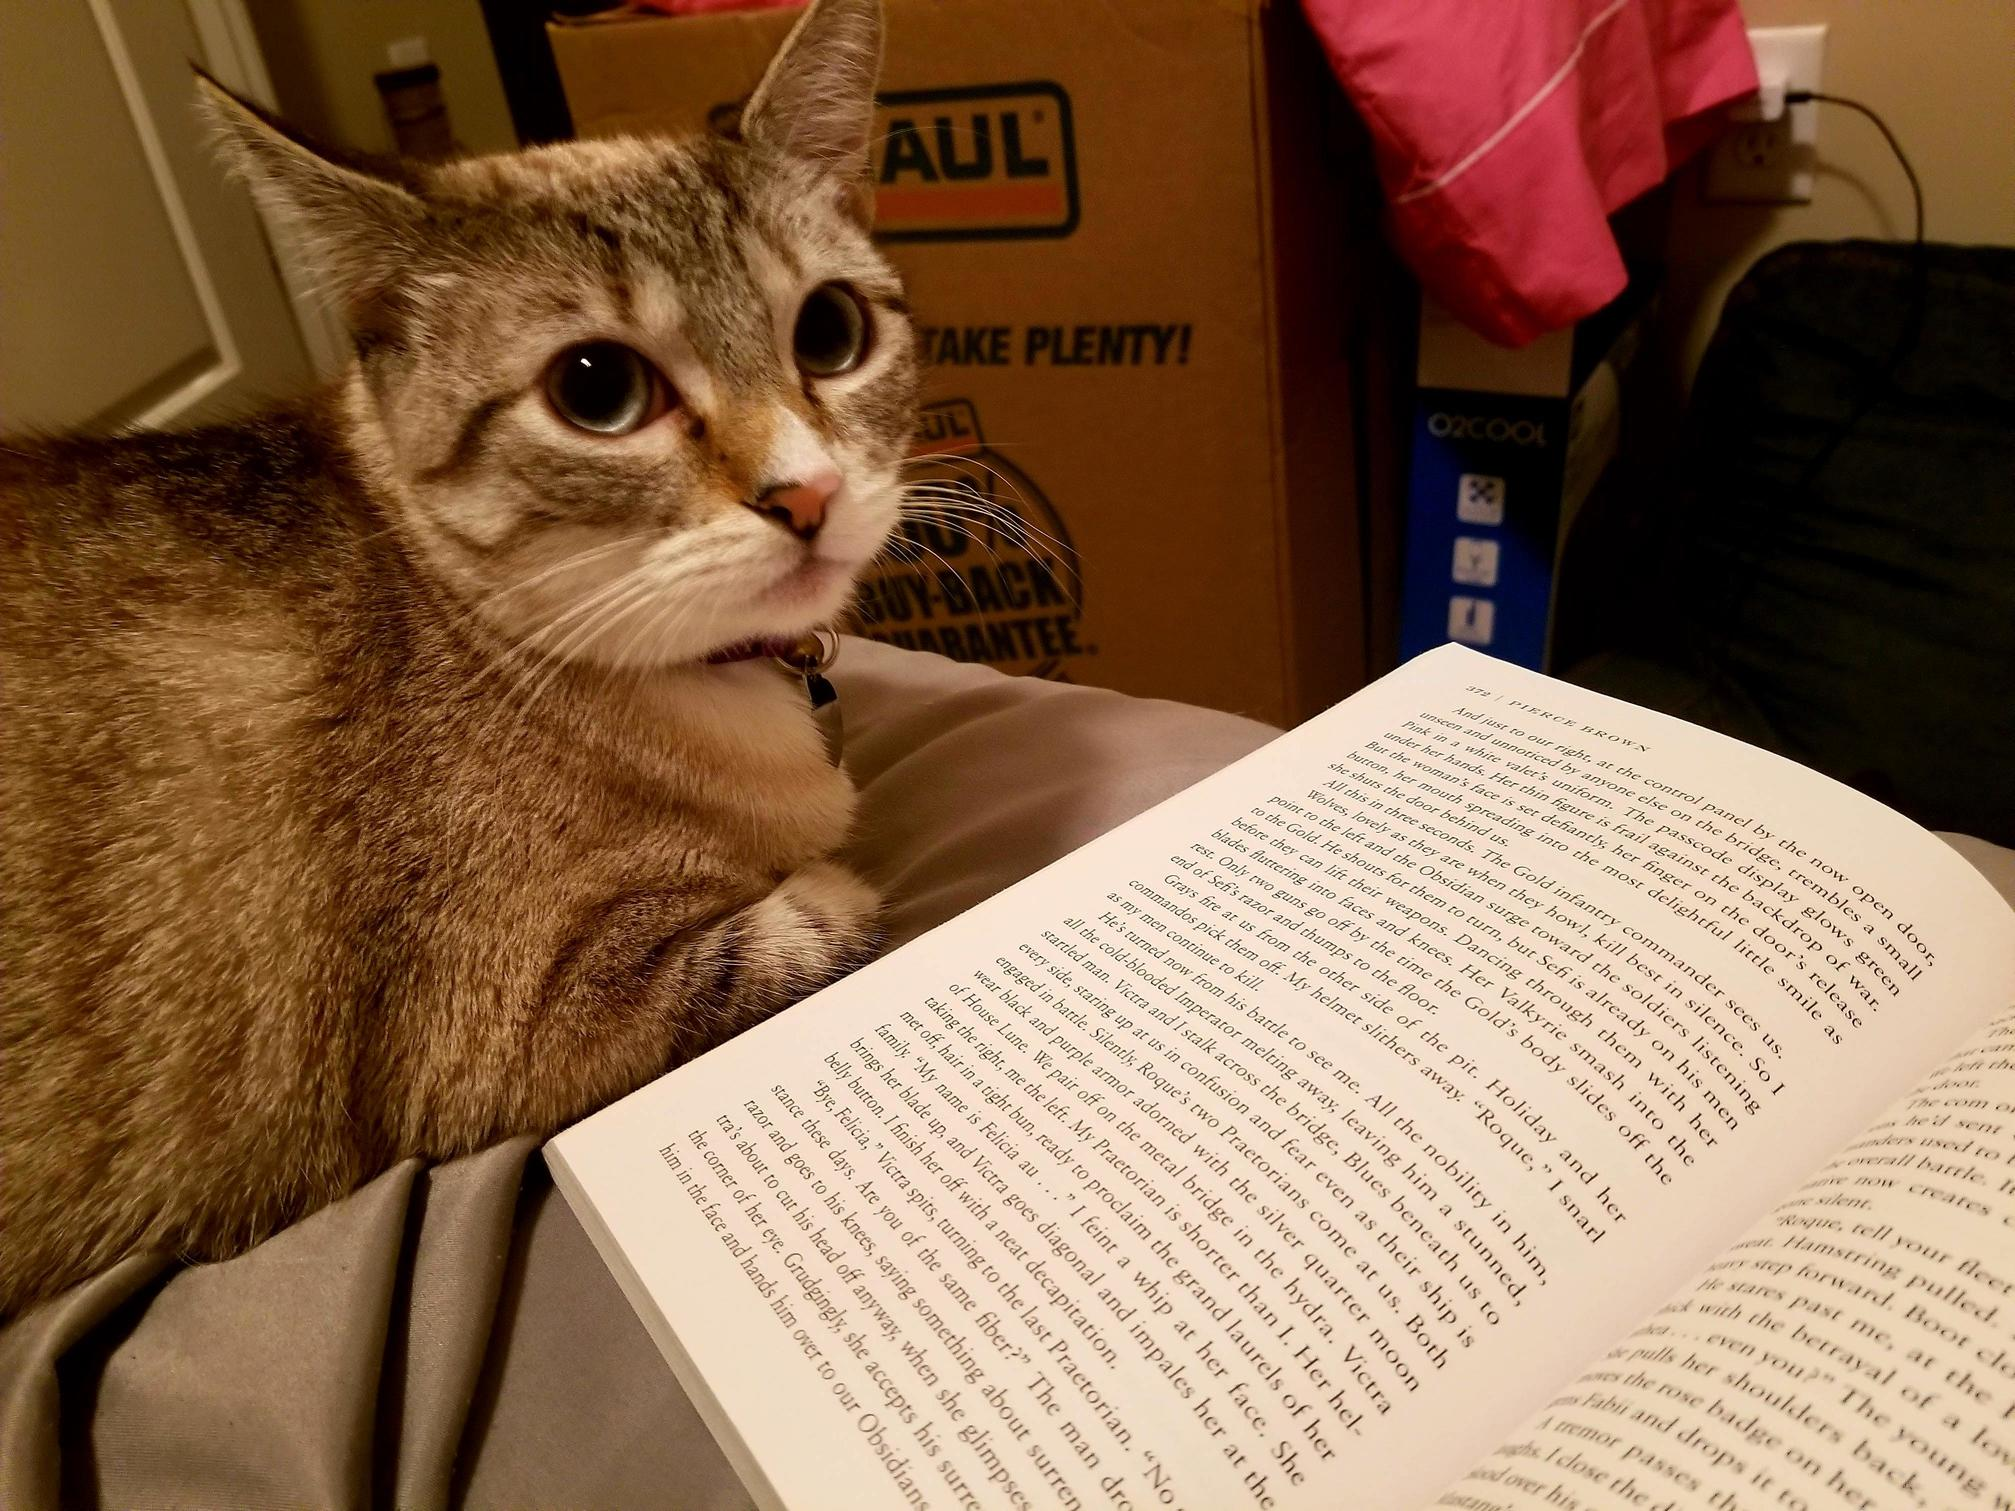 Zoey appreciates good literature. she thinks i read slow but always waits patiently for me to turn the page.